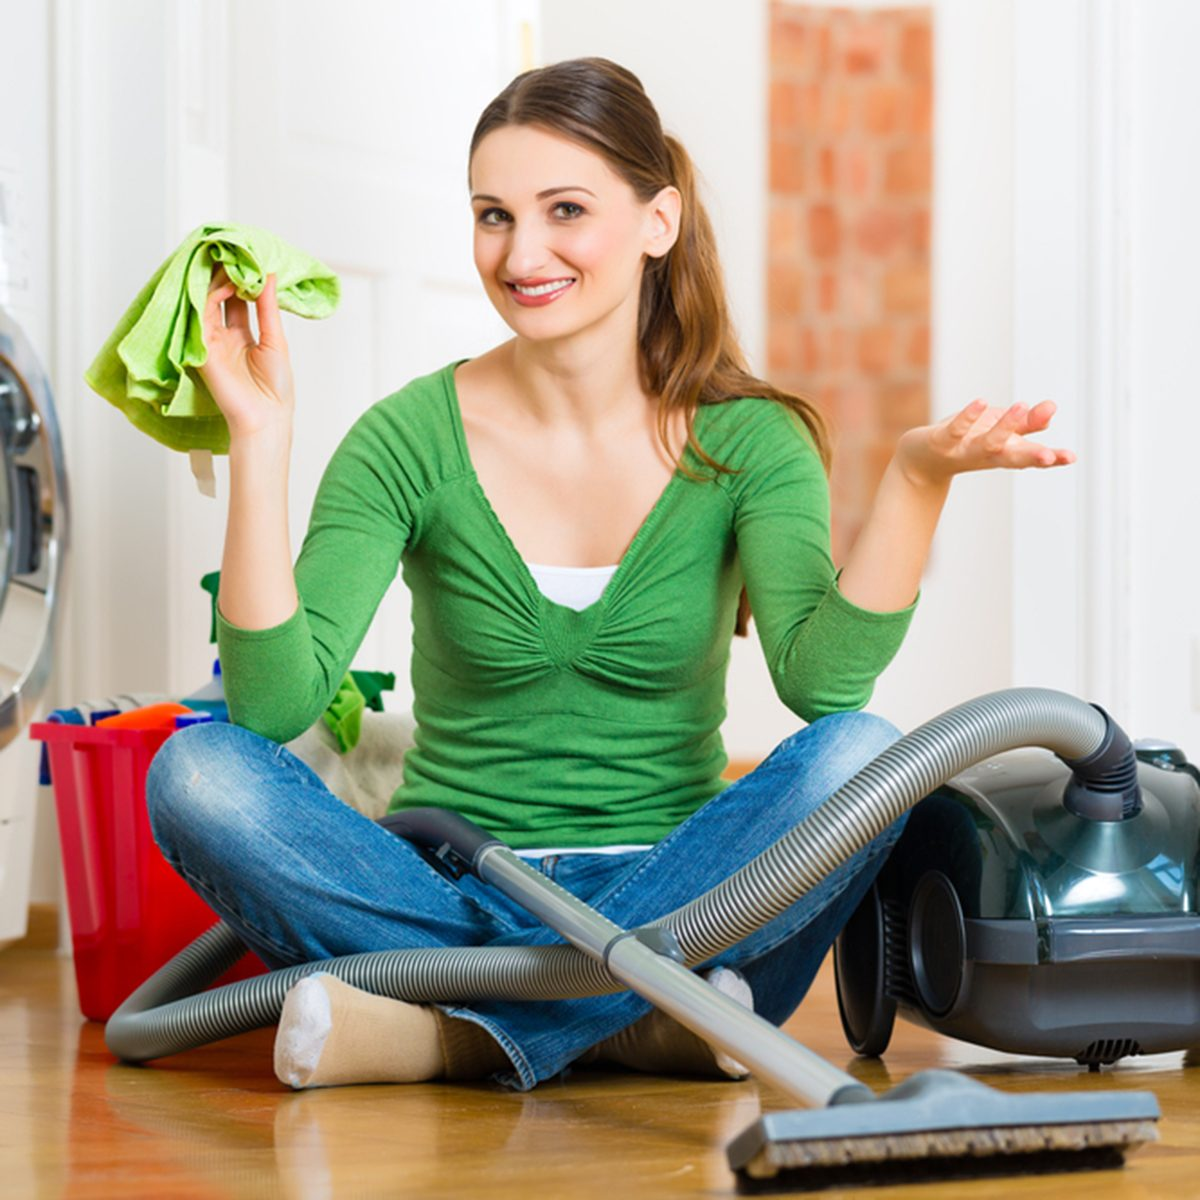 Young woman cleaning at home, she has a cleaning day and using a vacuum cleaner cleaning products and a bucket